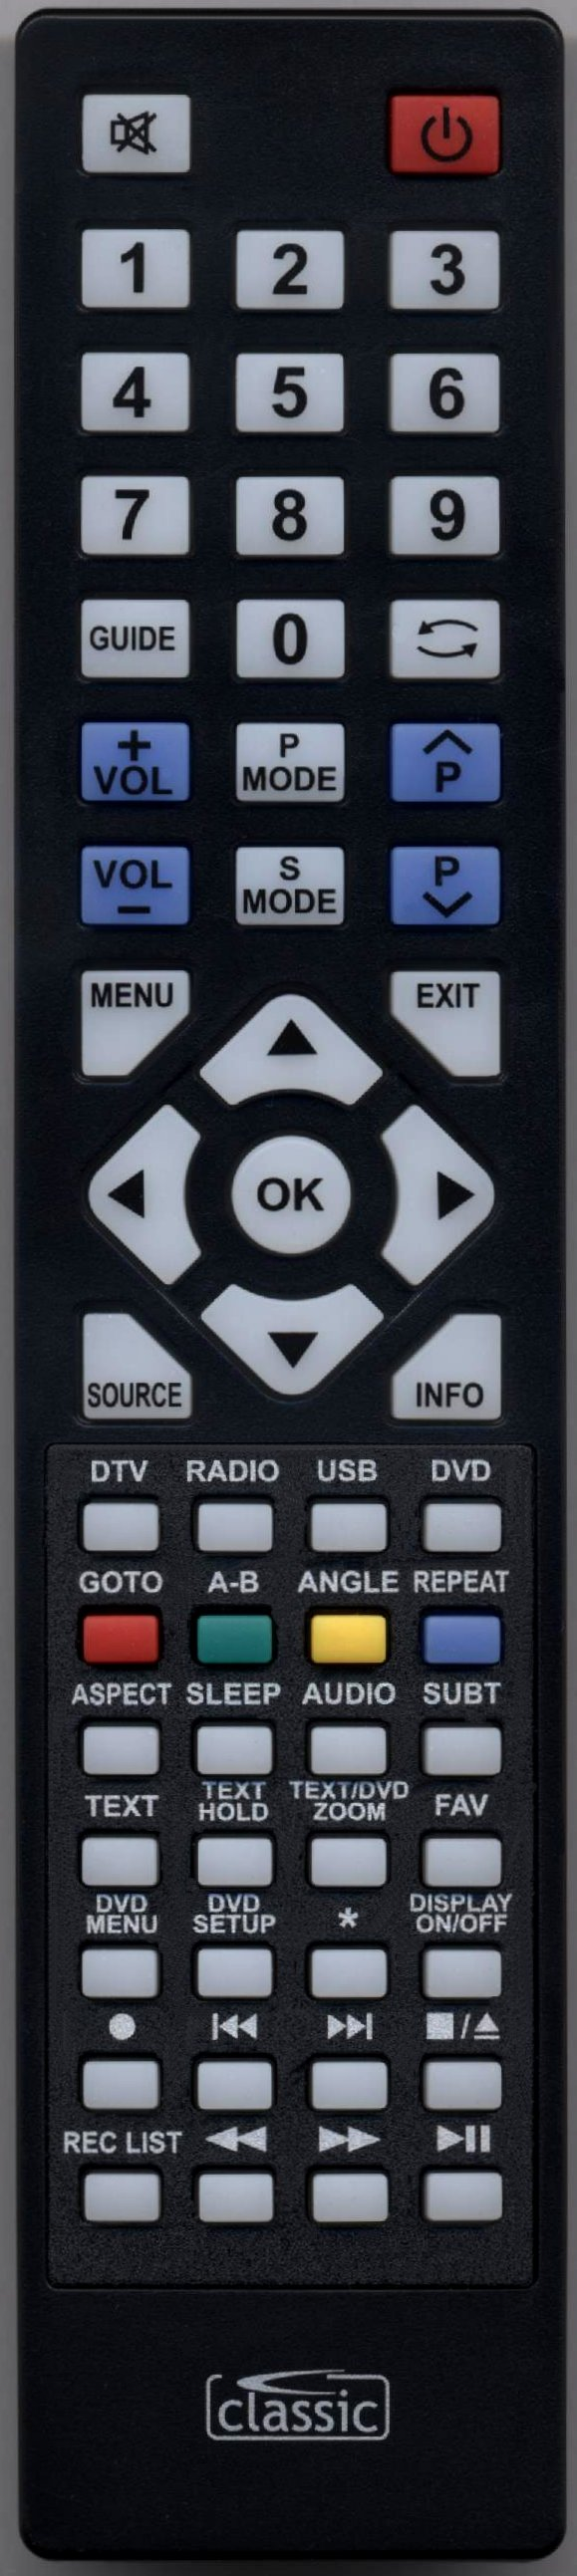 BLAUPUNKT 32/141I-GB-5B-FHKUP-UK Remote Control Alternative